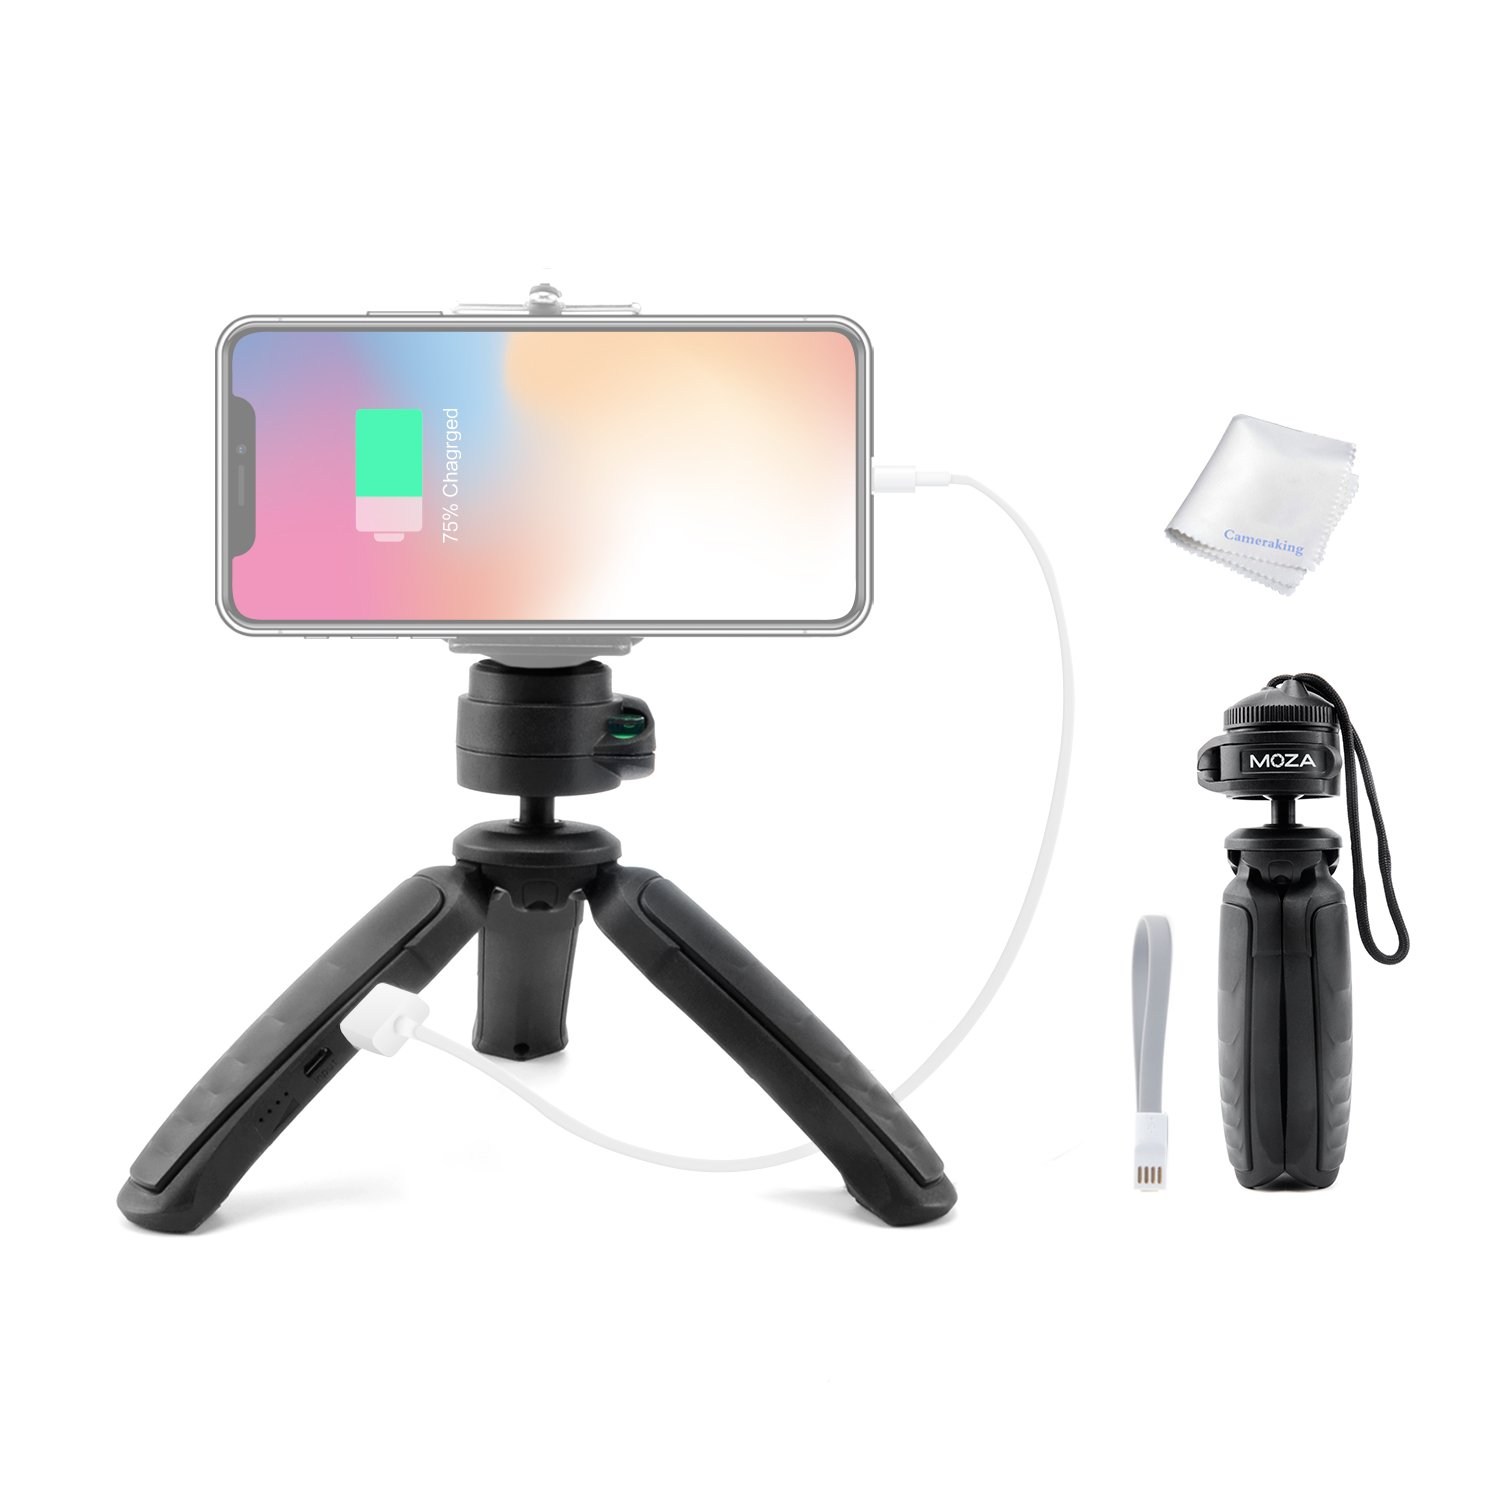 Moza Power Tripod with Built-in Power Bank 3200mAh for Moza Mini-MI Gimbal Convenient to Charge iPhone,Android Smartphone,Camera, Gopro and Other Intelligent Devices Max Payload 3.3lb/1.5kg